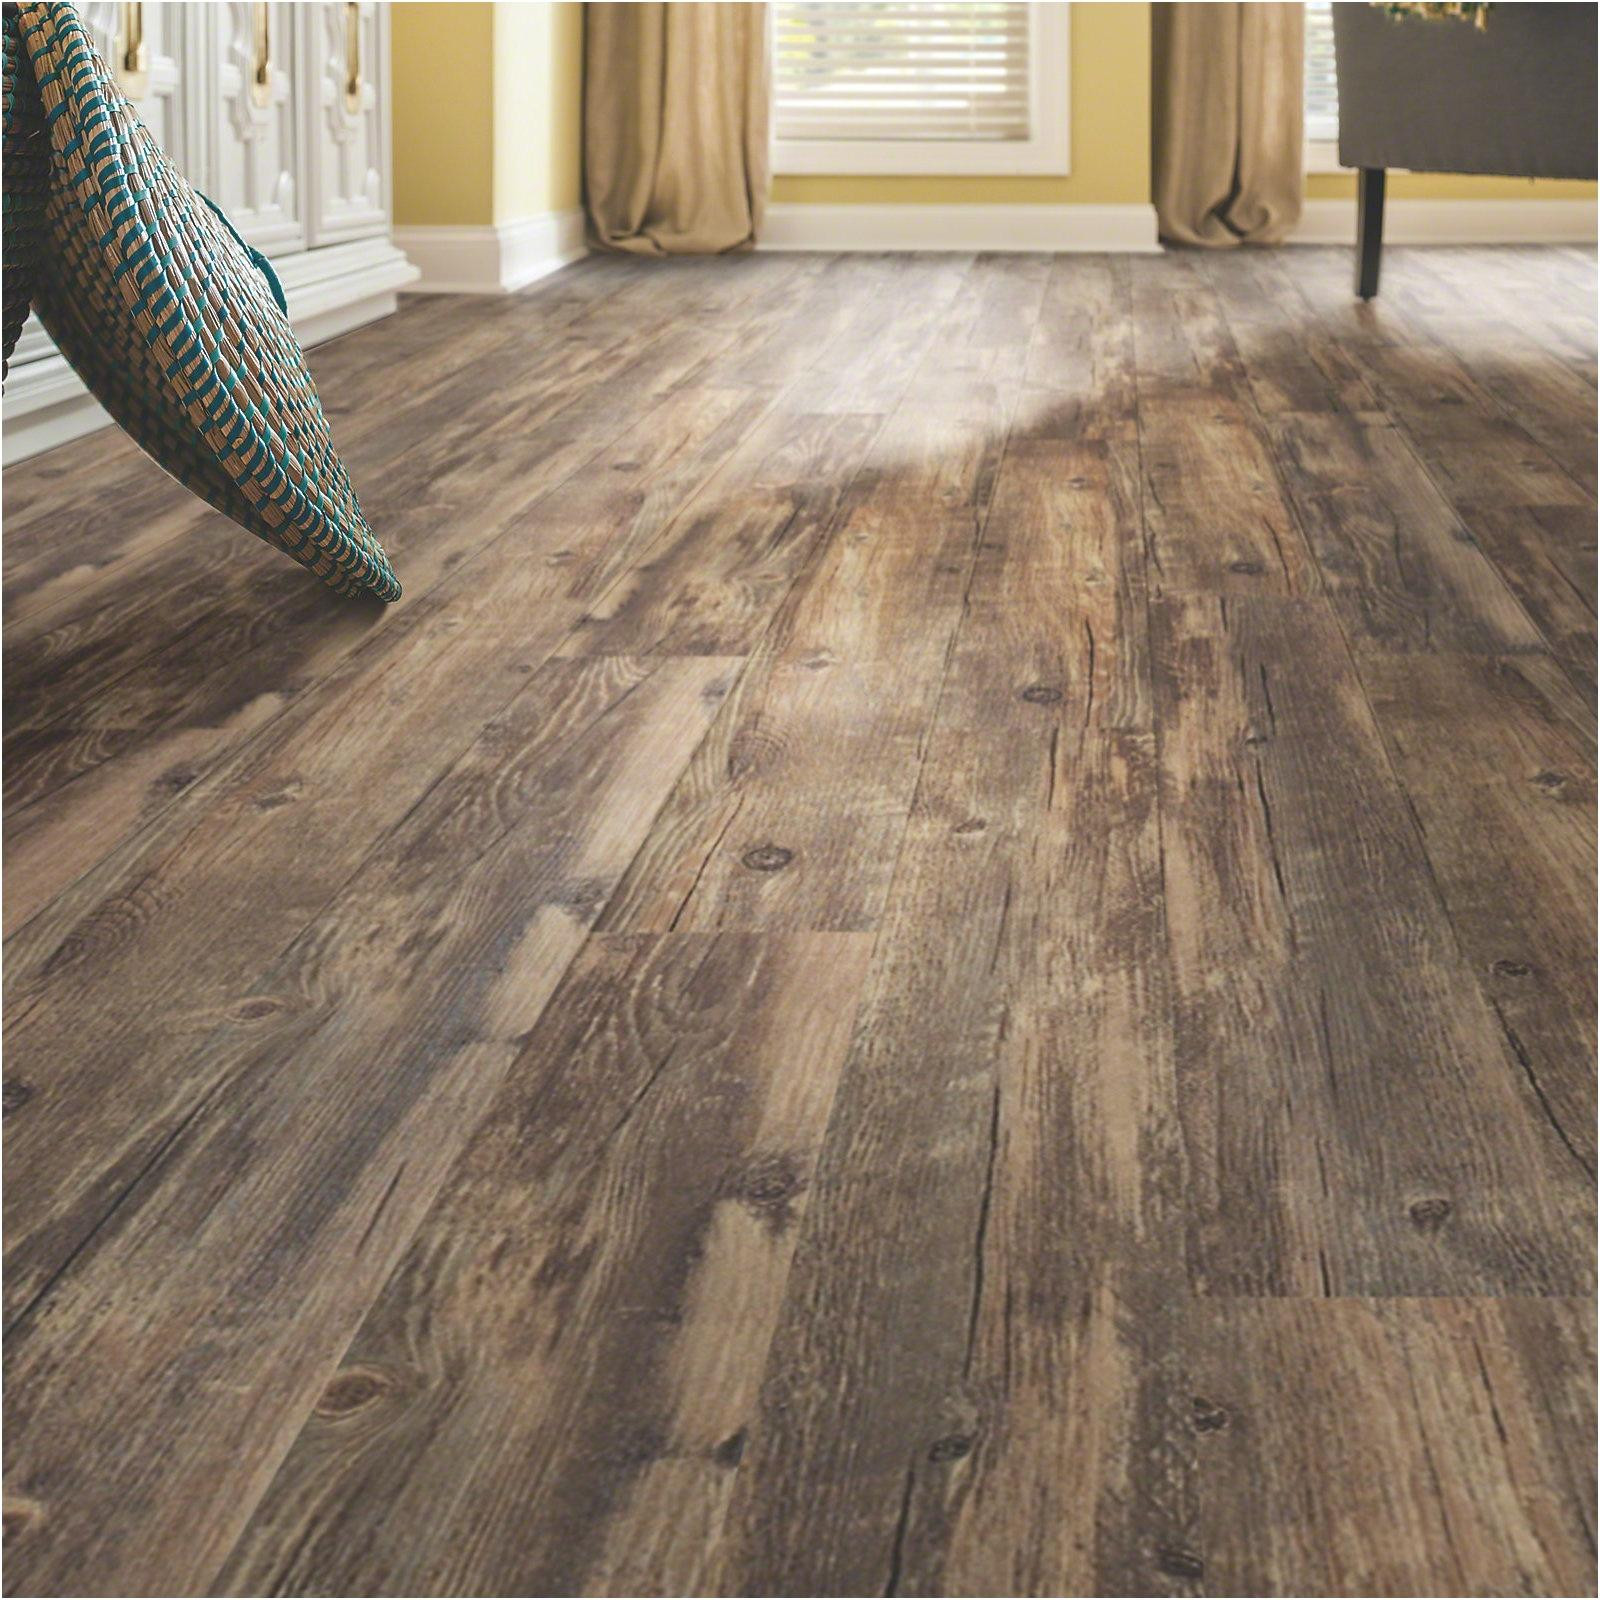 Wide Plank Hardwood Flooring Reviews Of Vinyl Plank Floor Home Design Vinyl Plank Flooring Reviews Awesome In Vinyl Plank Floor Home Design Vinyl Plank Flooring Reviews Awesome New Decorating An